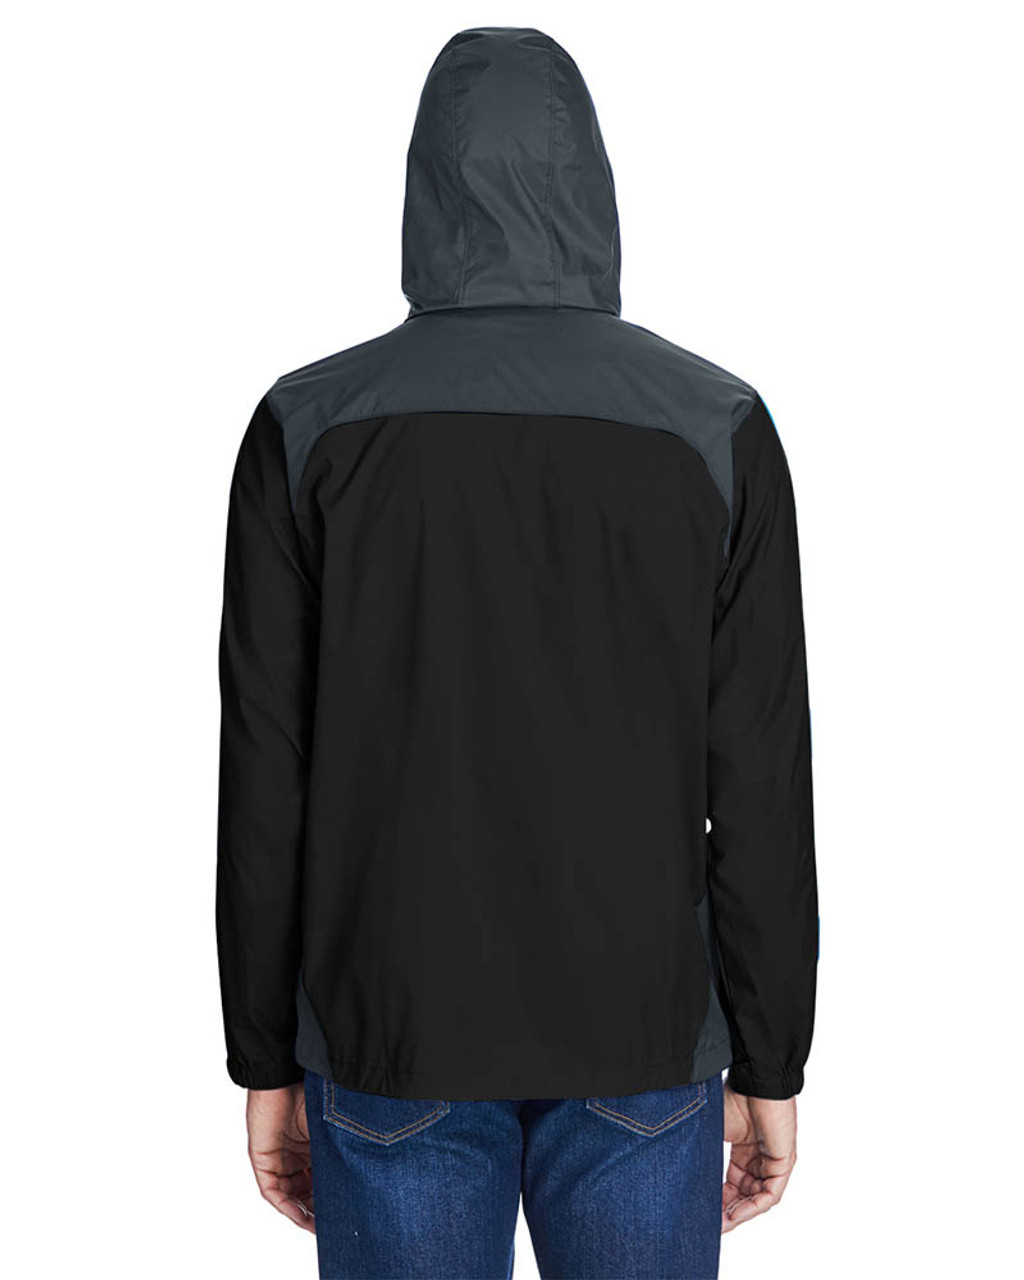 Black/Grill -Back  2015 Columbia Men's Glennaker Lake™ Rain Jacket  | BlankClothing.ca